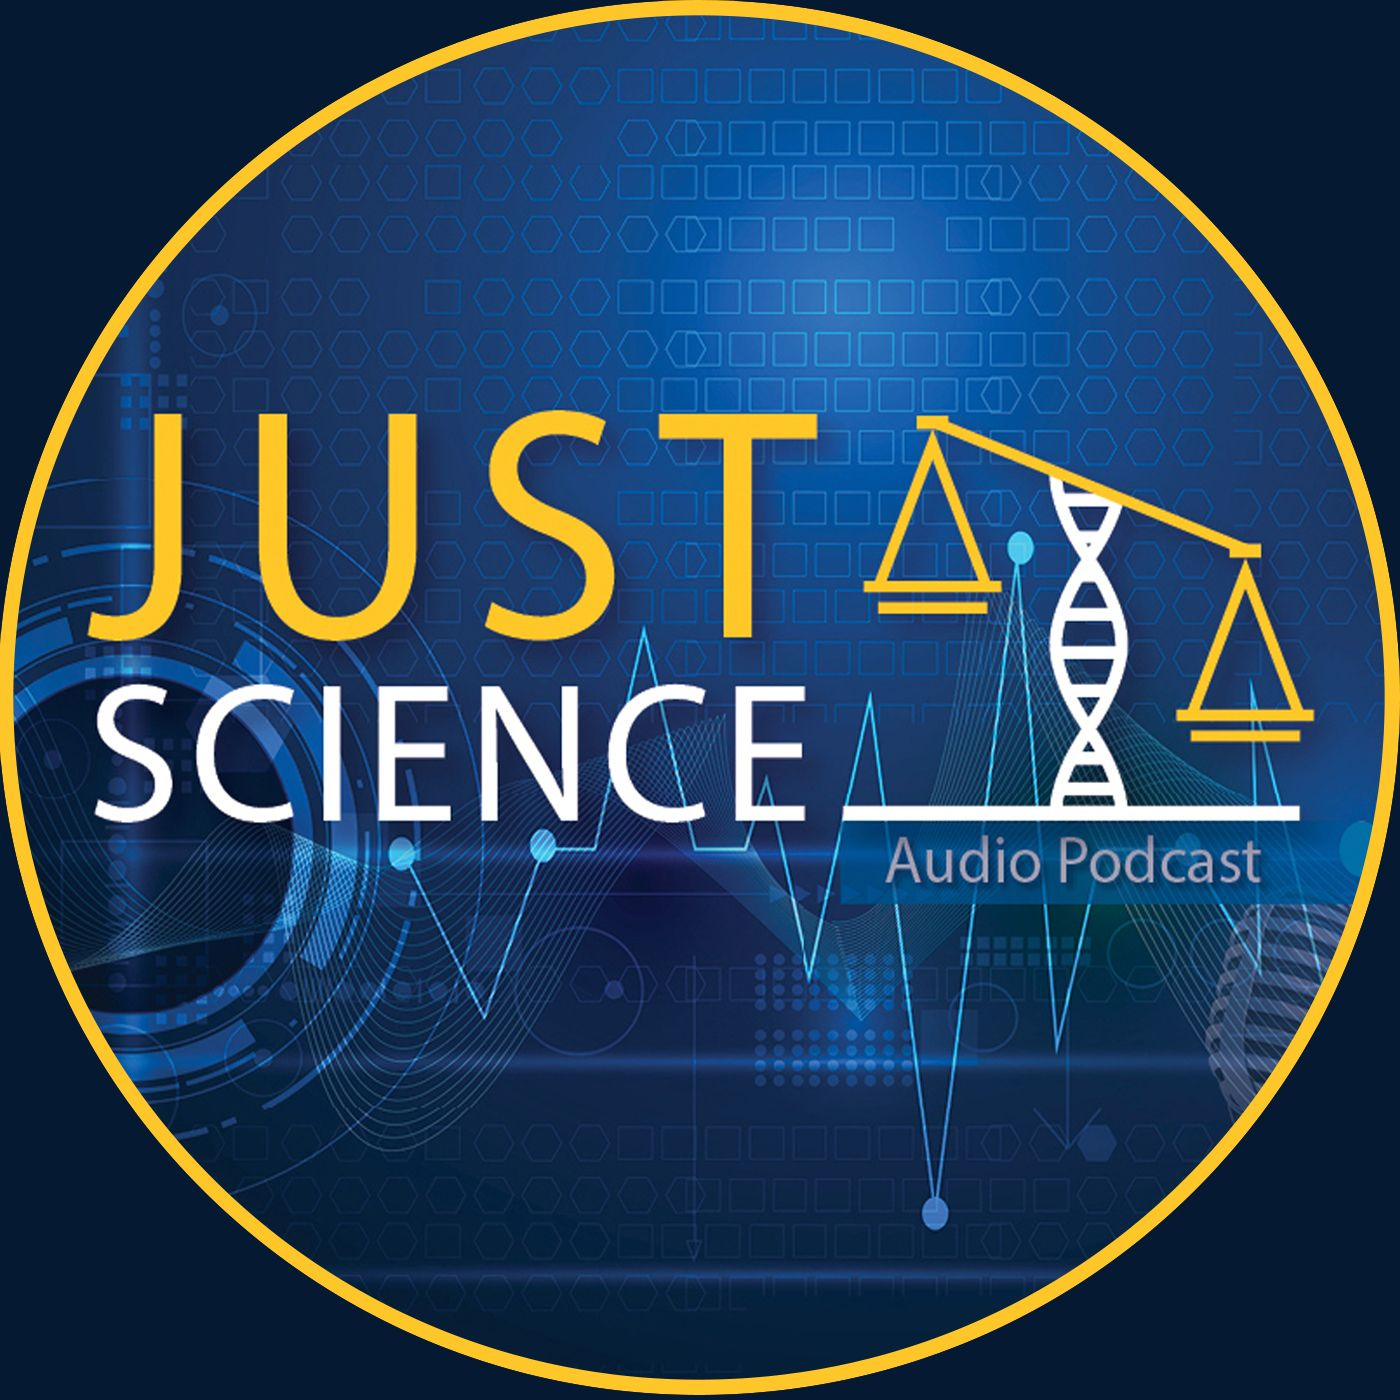 Just Science Listen Via Stitcher For Podcasts